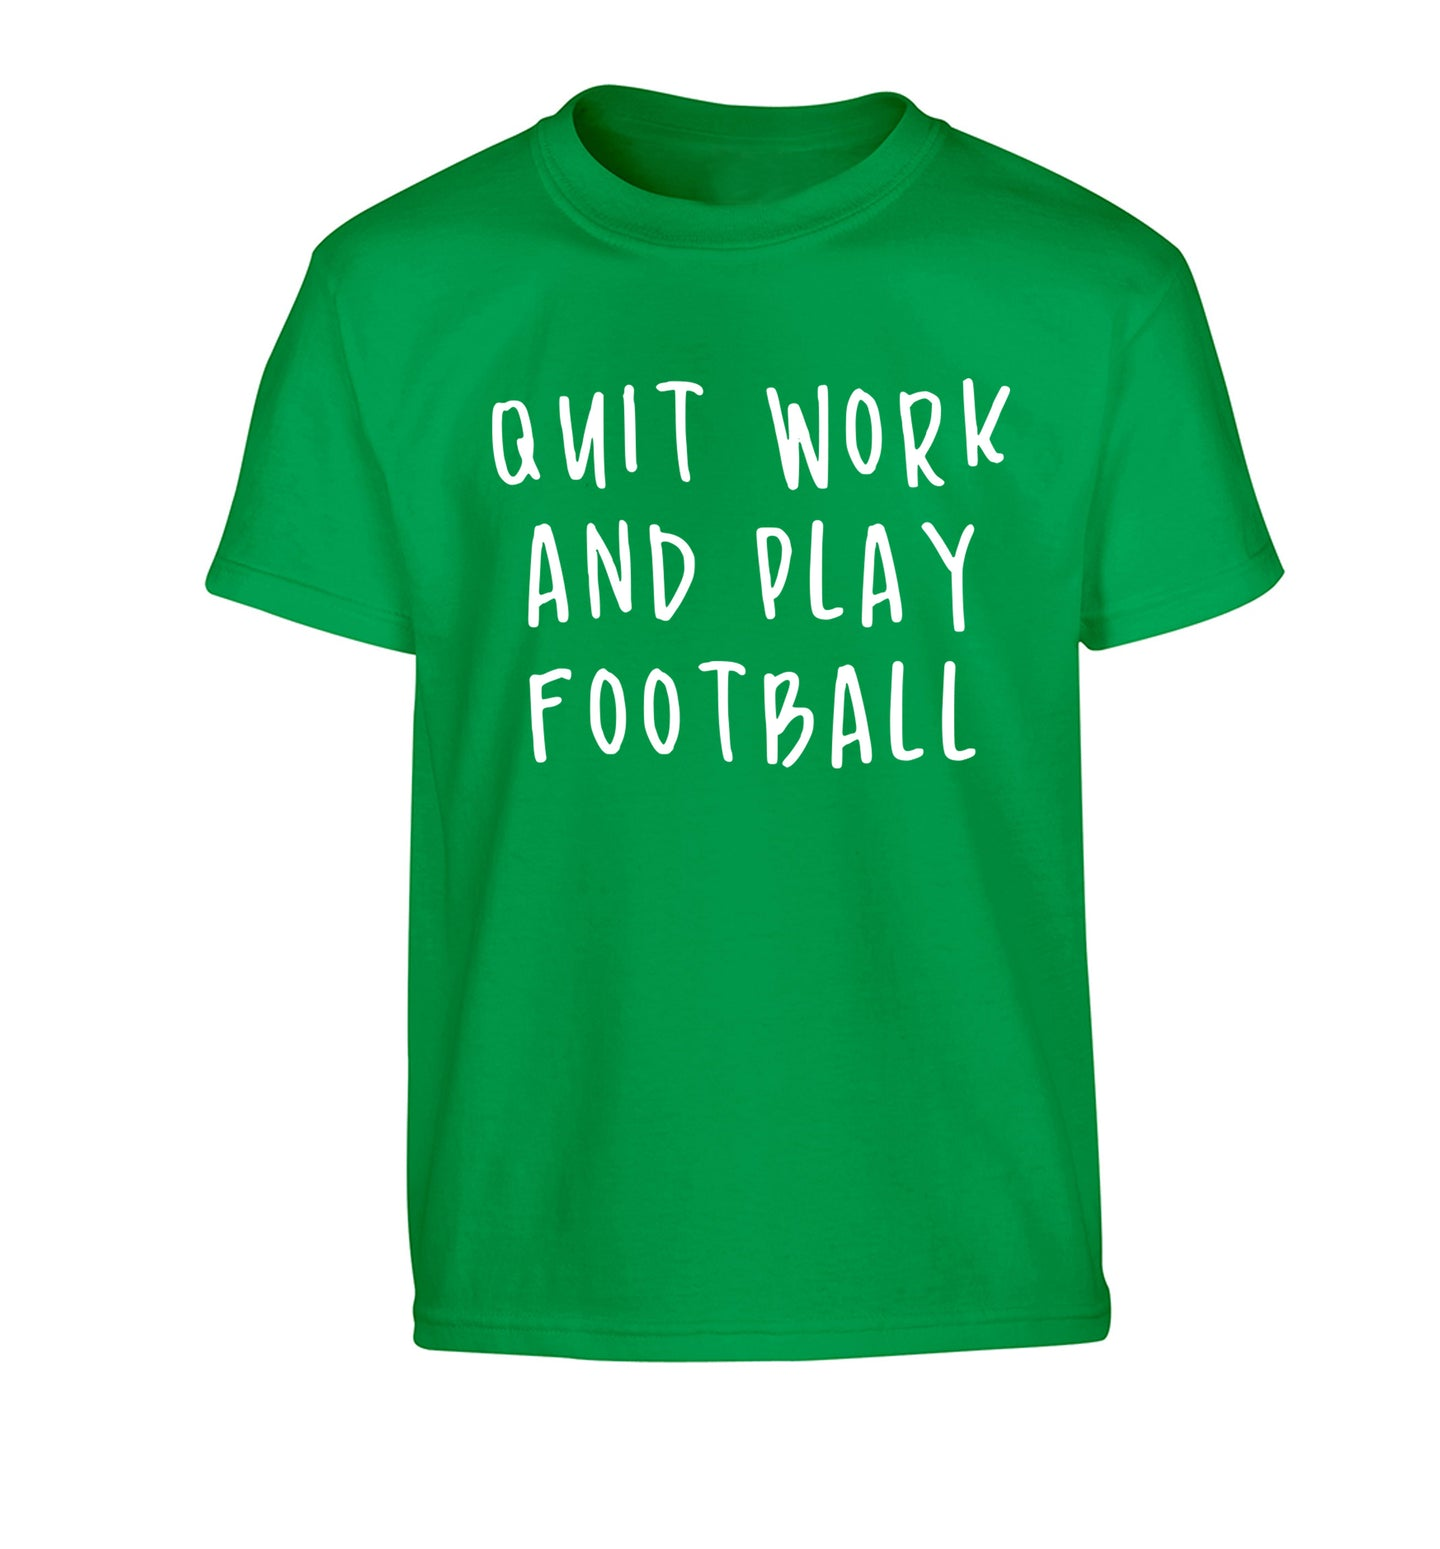 Quit work play football Children's green Tshirt 12-14 Years